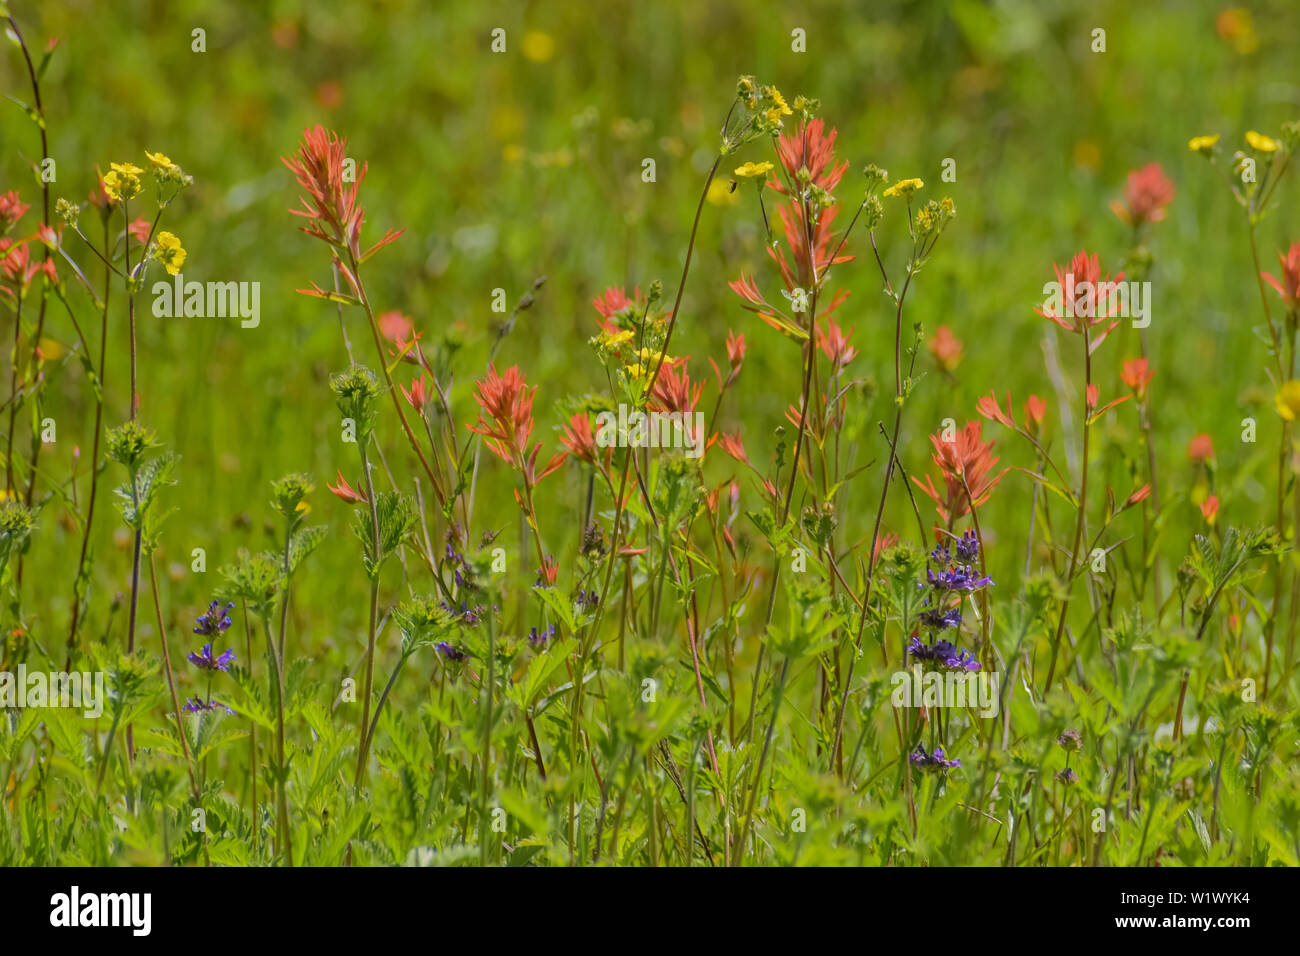 Beautiful red Indian Paintbrush and purple Lupine native wildflowers blooming in a grassy California meadow - Stock Image